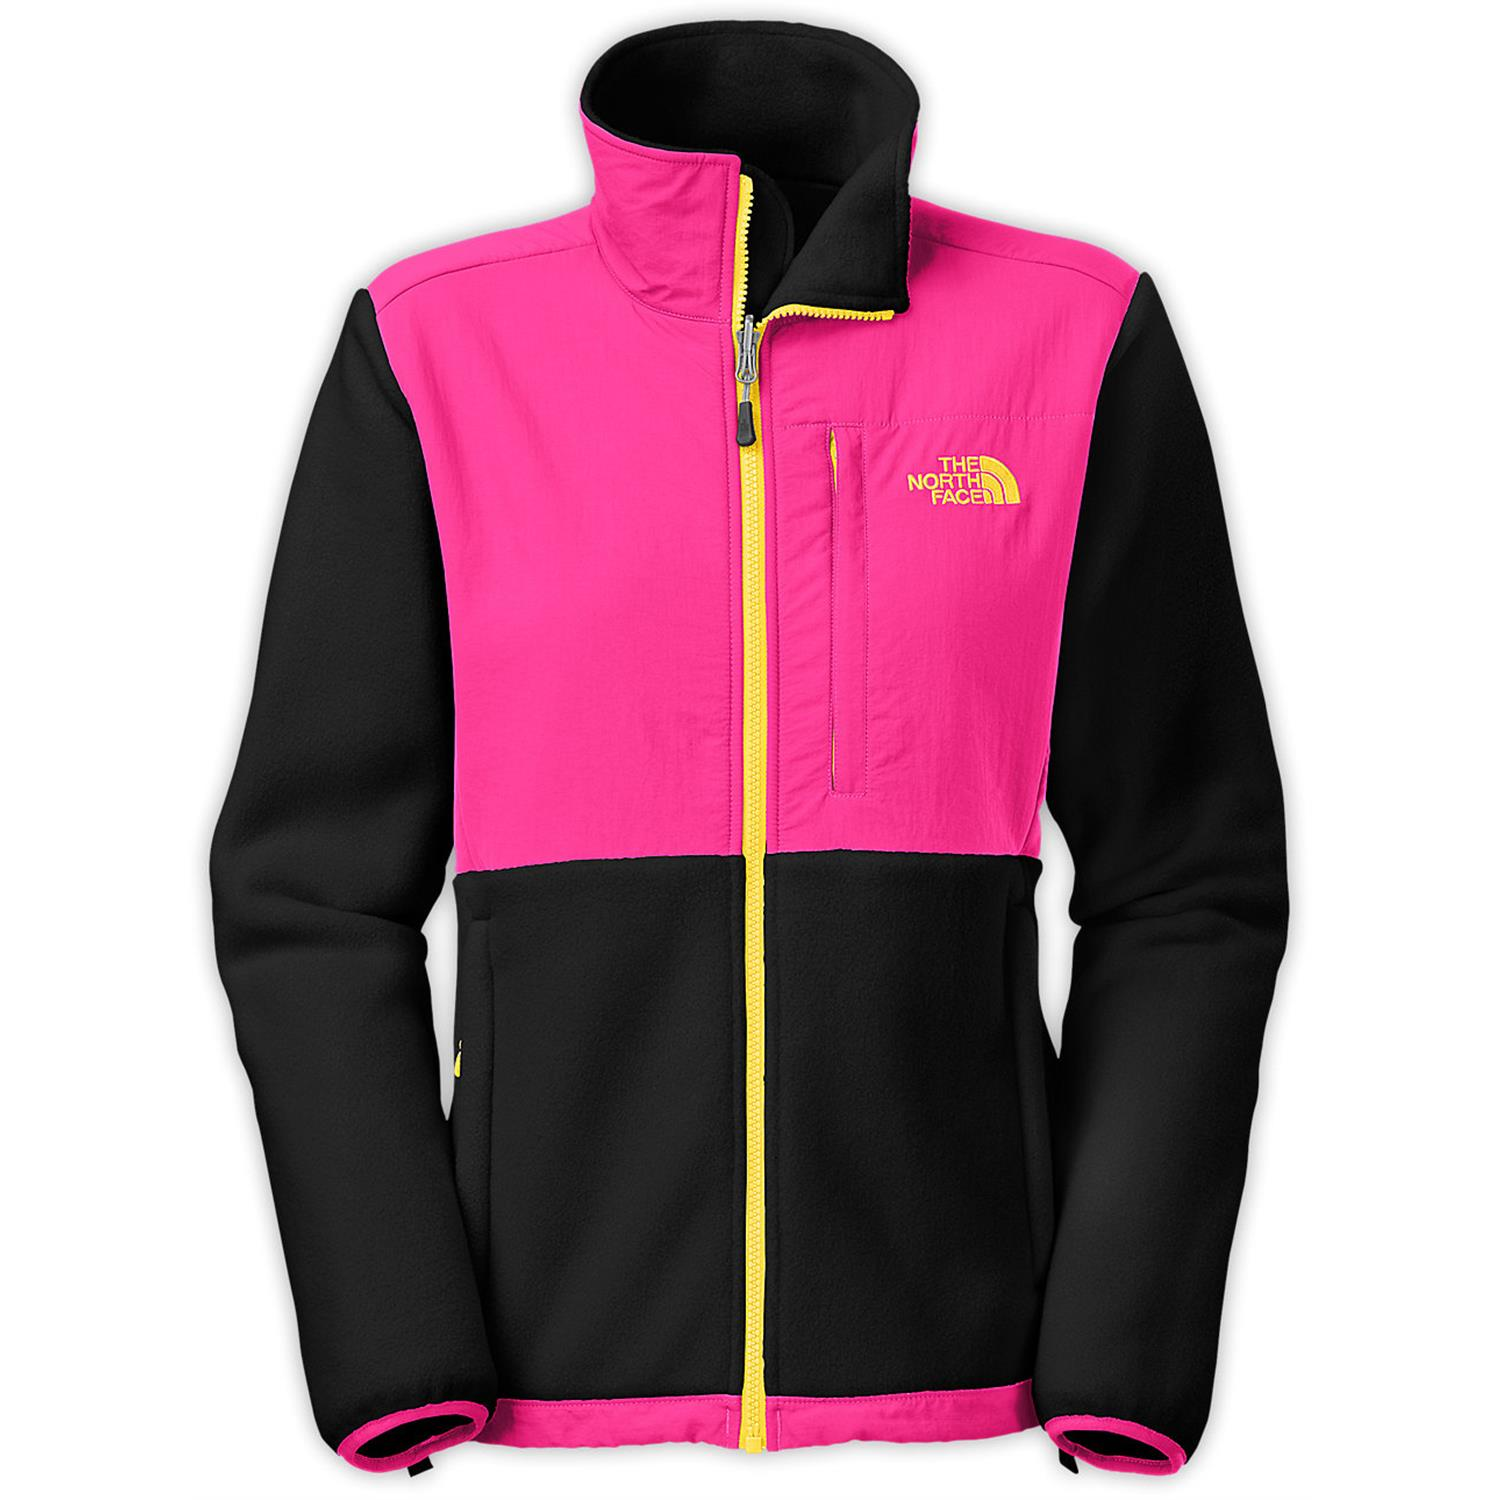 Product Code: NORTHFACE-DISCOUNT-623307